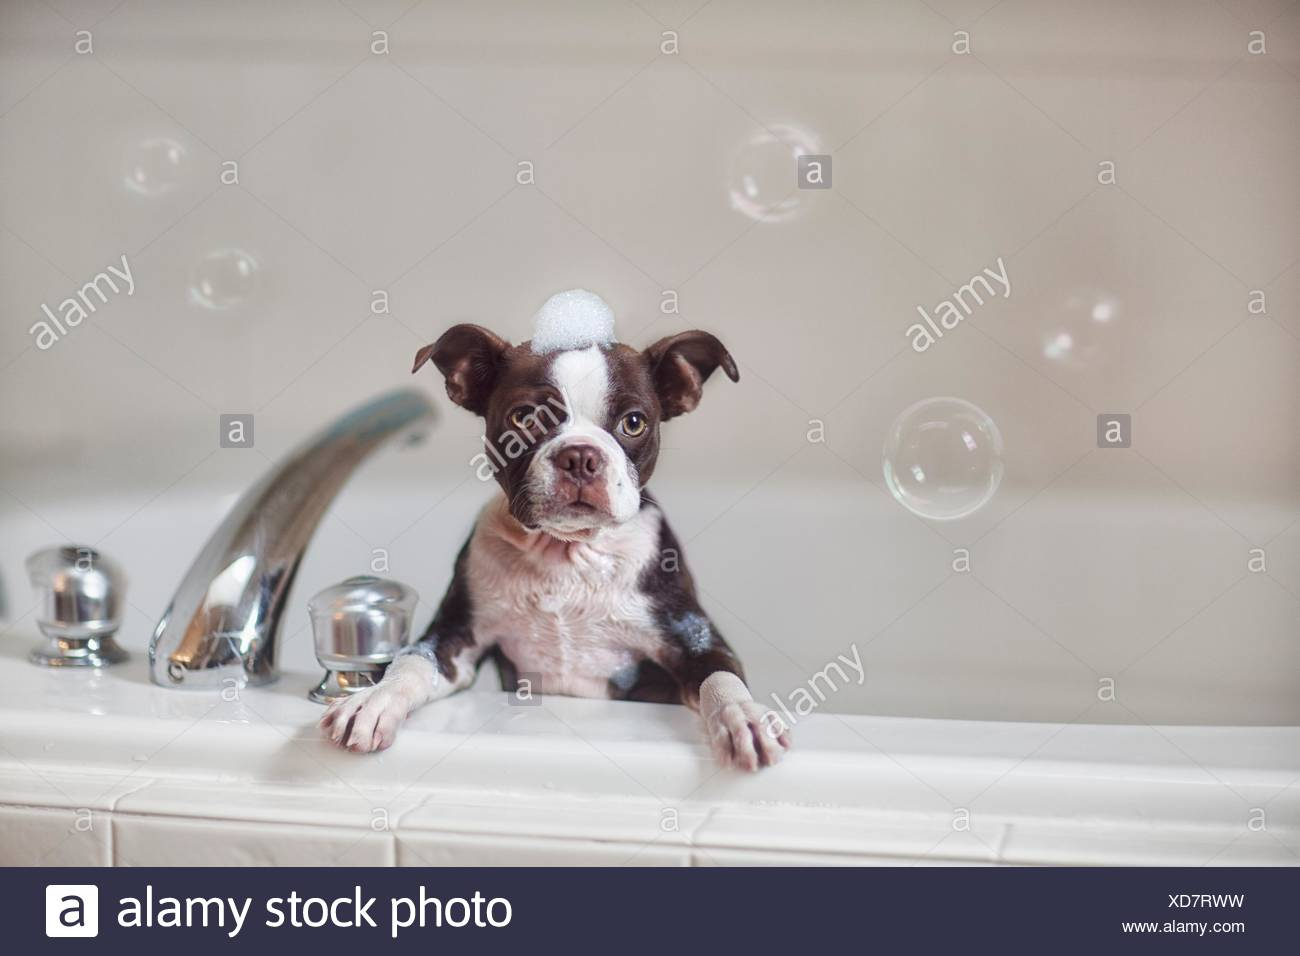 Boston Terrier puppy in bath with soap suds on head, looking at camera - Stock Image